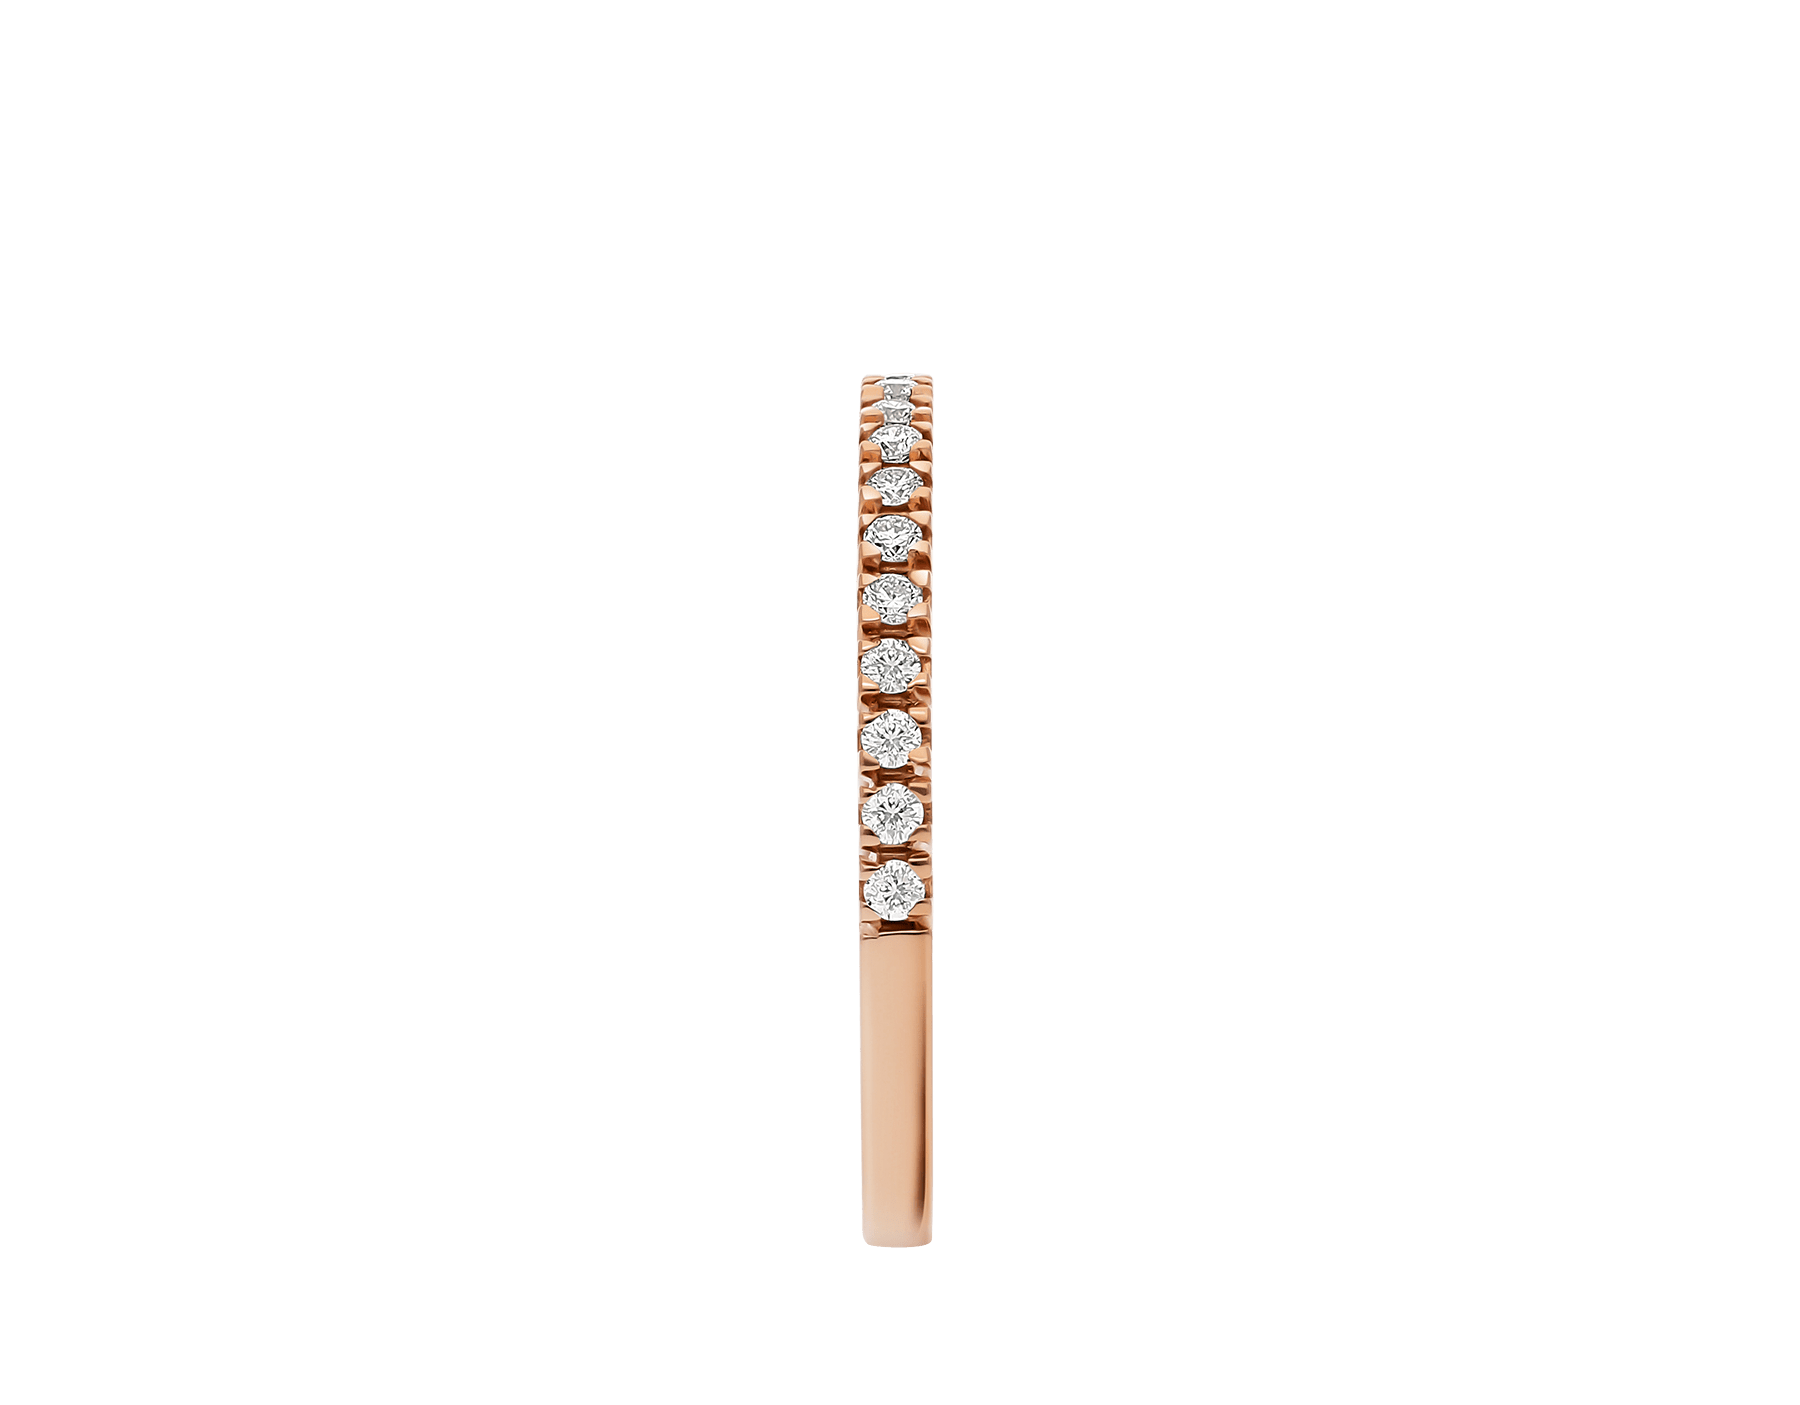 Alliance Eternity fine en or rose 18 K avec demi-tour diamants ronds taille brillant AN857561 image 3